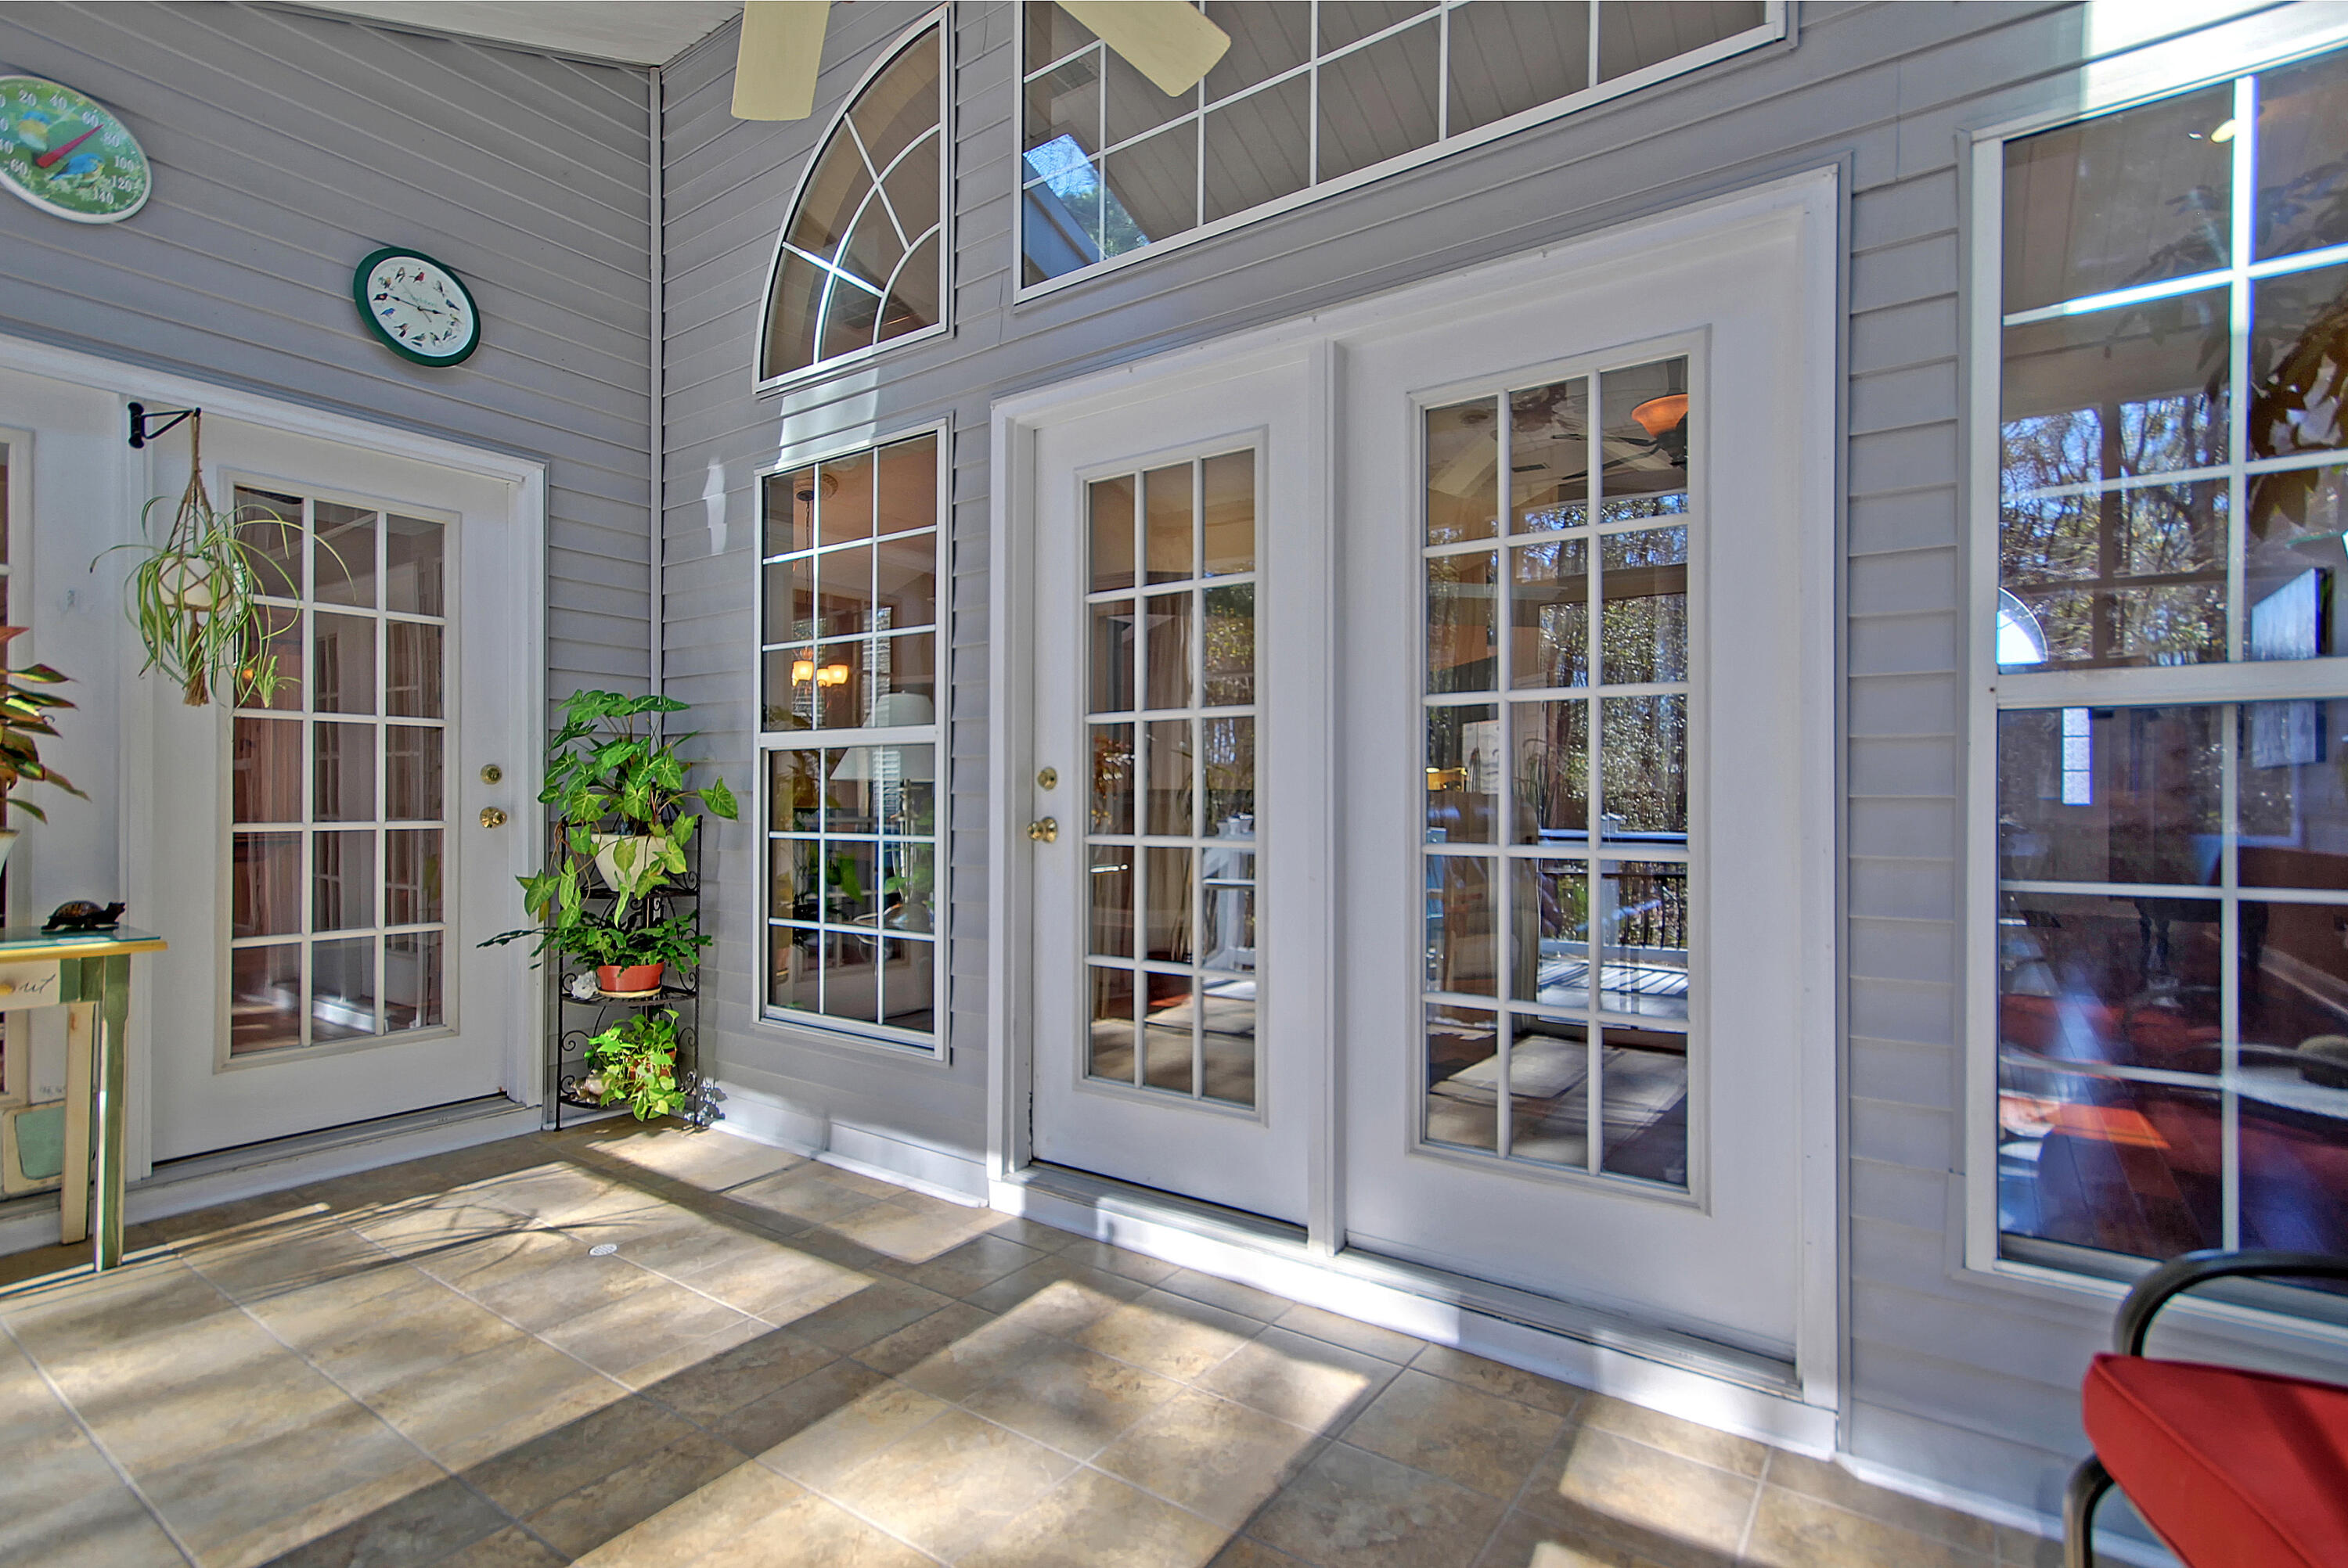 Rivertowne Country Club Homes For Sale - 1868 Great Hope, Mount Pleasant, SC - 5